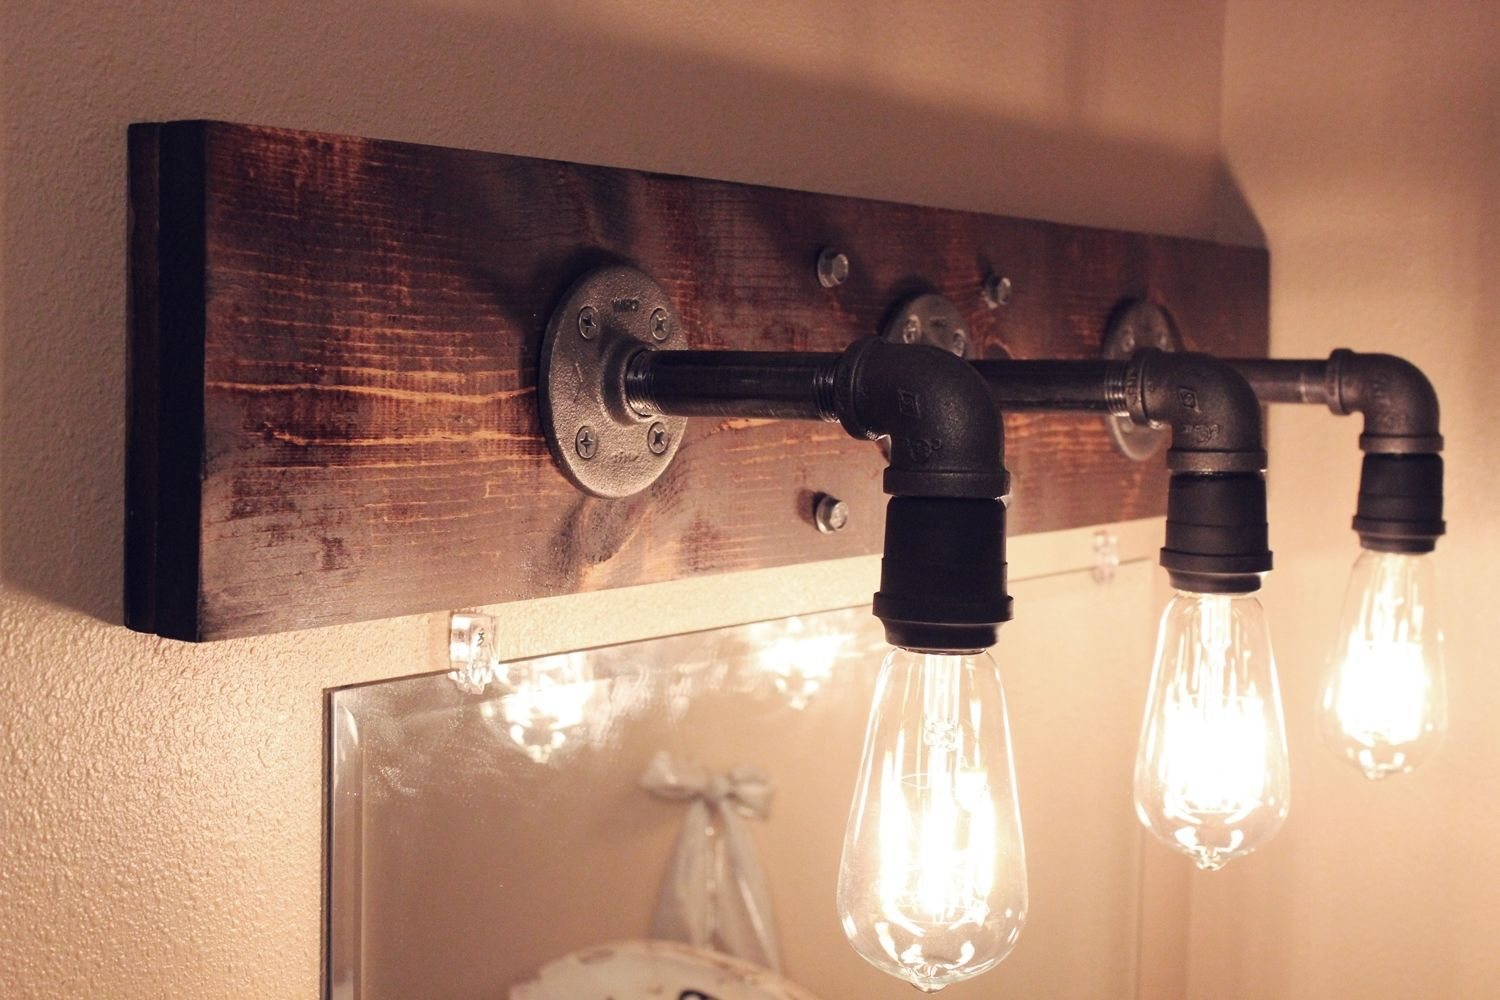 Diy Industrial Bathroom Light Fixtures Rustic Bathroom Lighting Industrial Bathroom Lighting Fixtures Diy